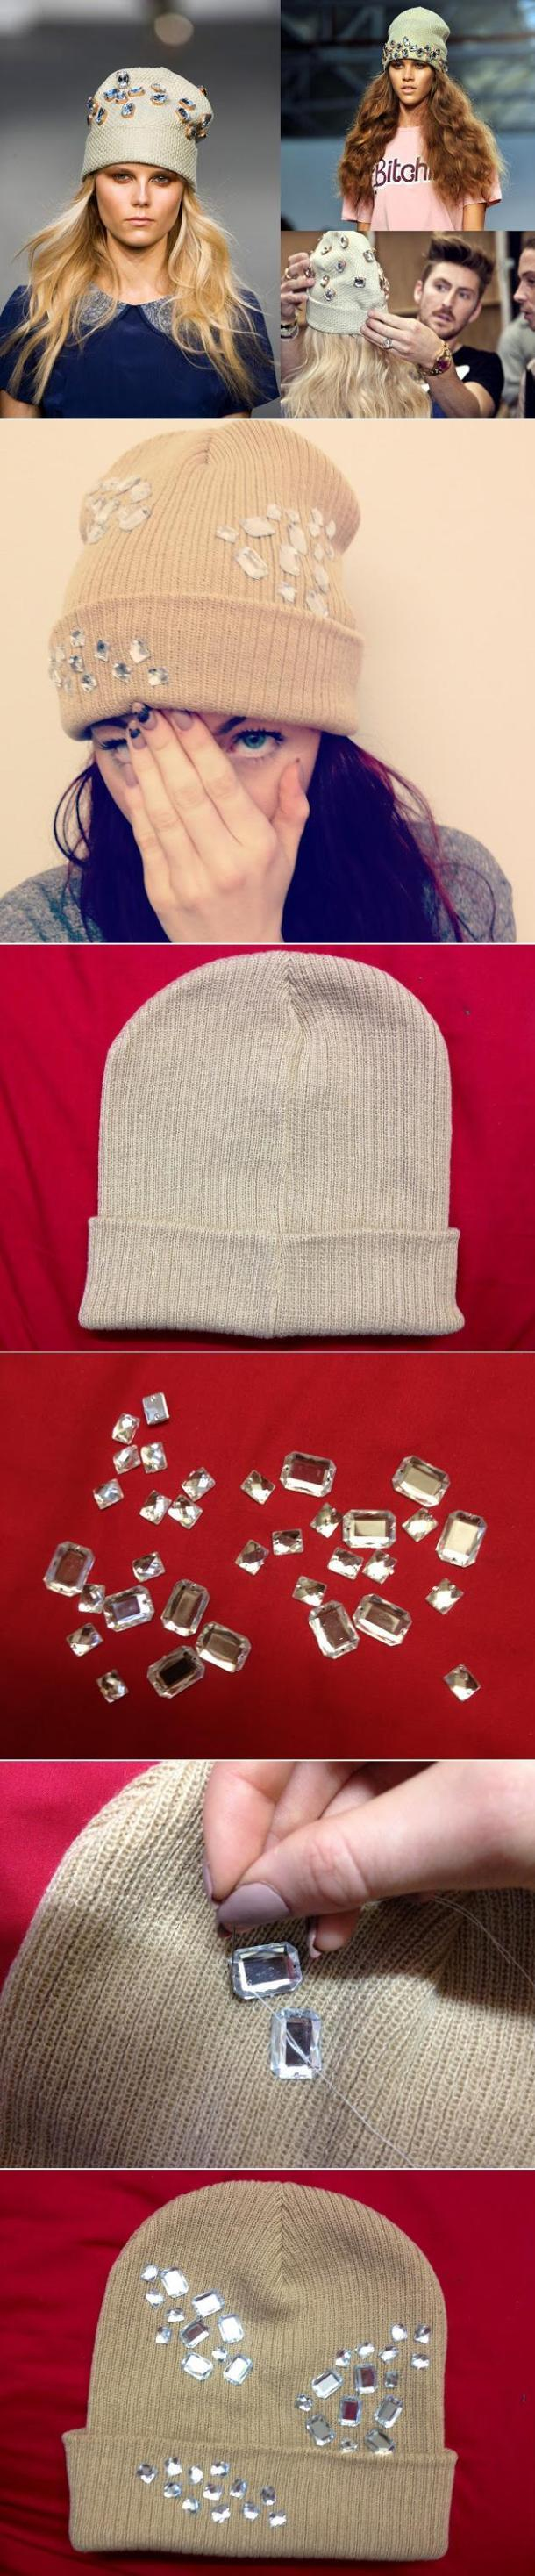 diy jeweled beanies